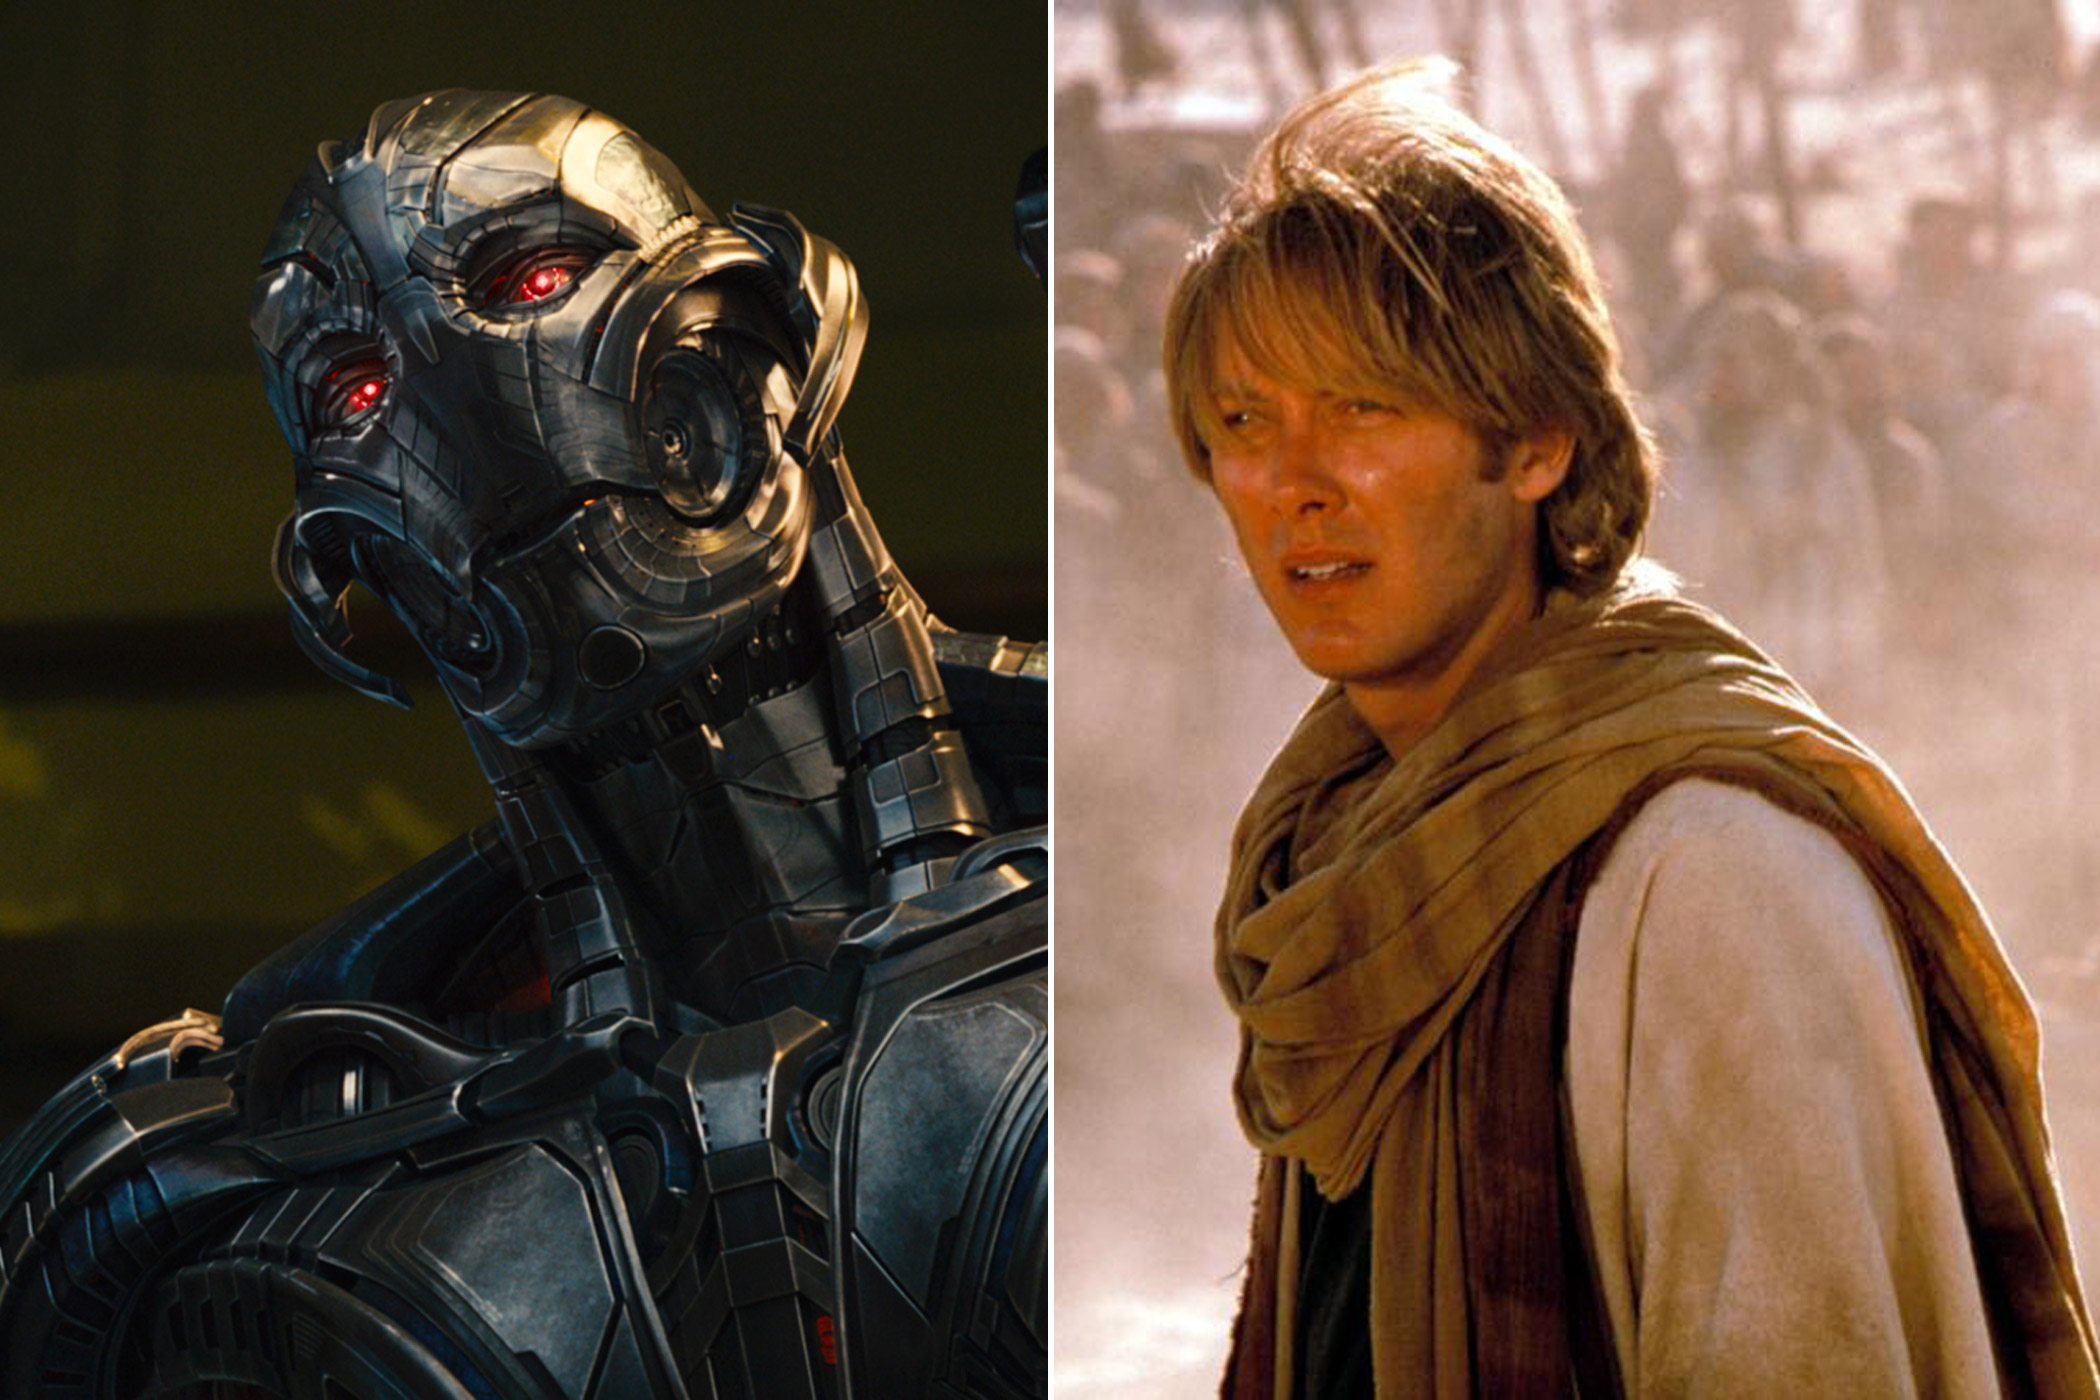 James Spader as the voice of Ultron in <i>The Avengers: Age of Ultron</i> and Dr. Daniel Jackson in <i>Stargate</i>